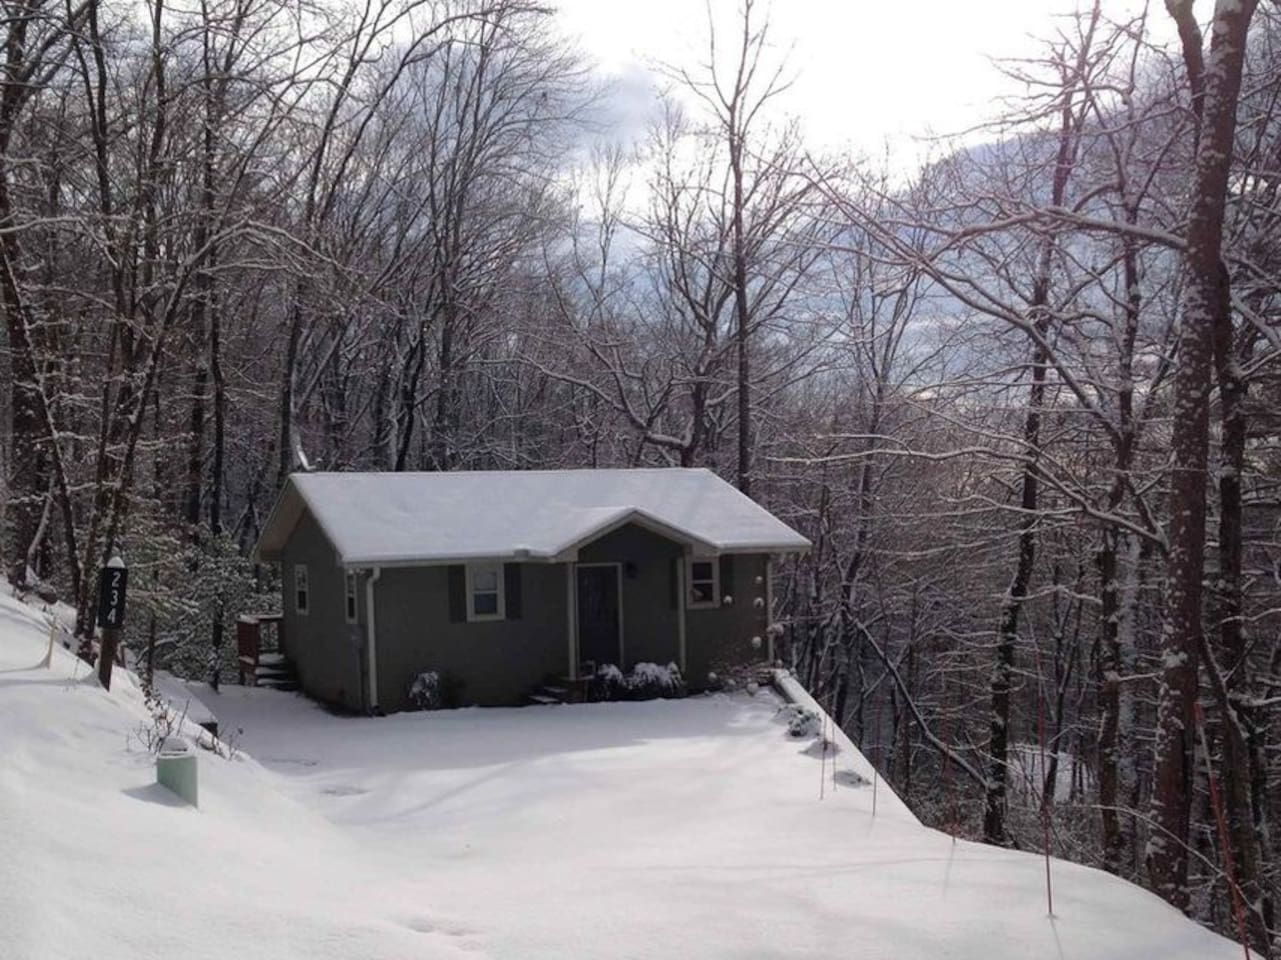 The cabin may look small, but has much to offer.  The seasonal mountain views make it magical!